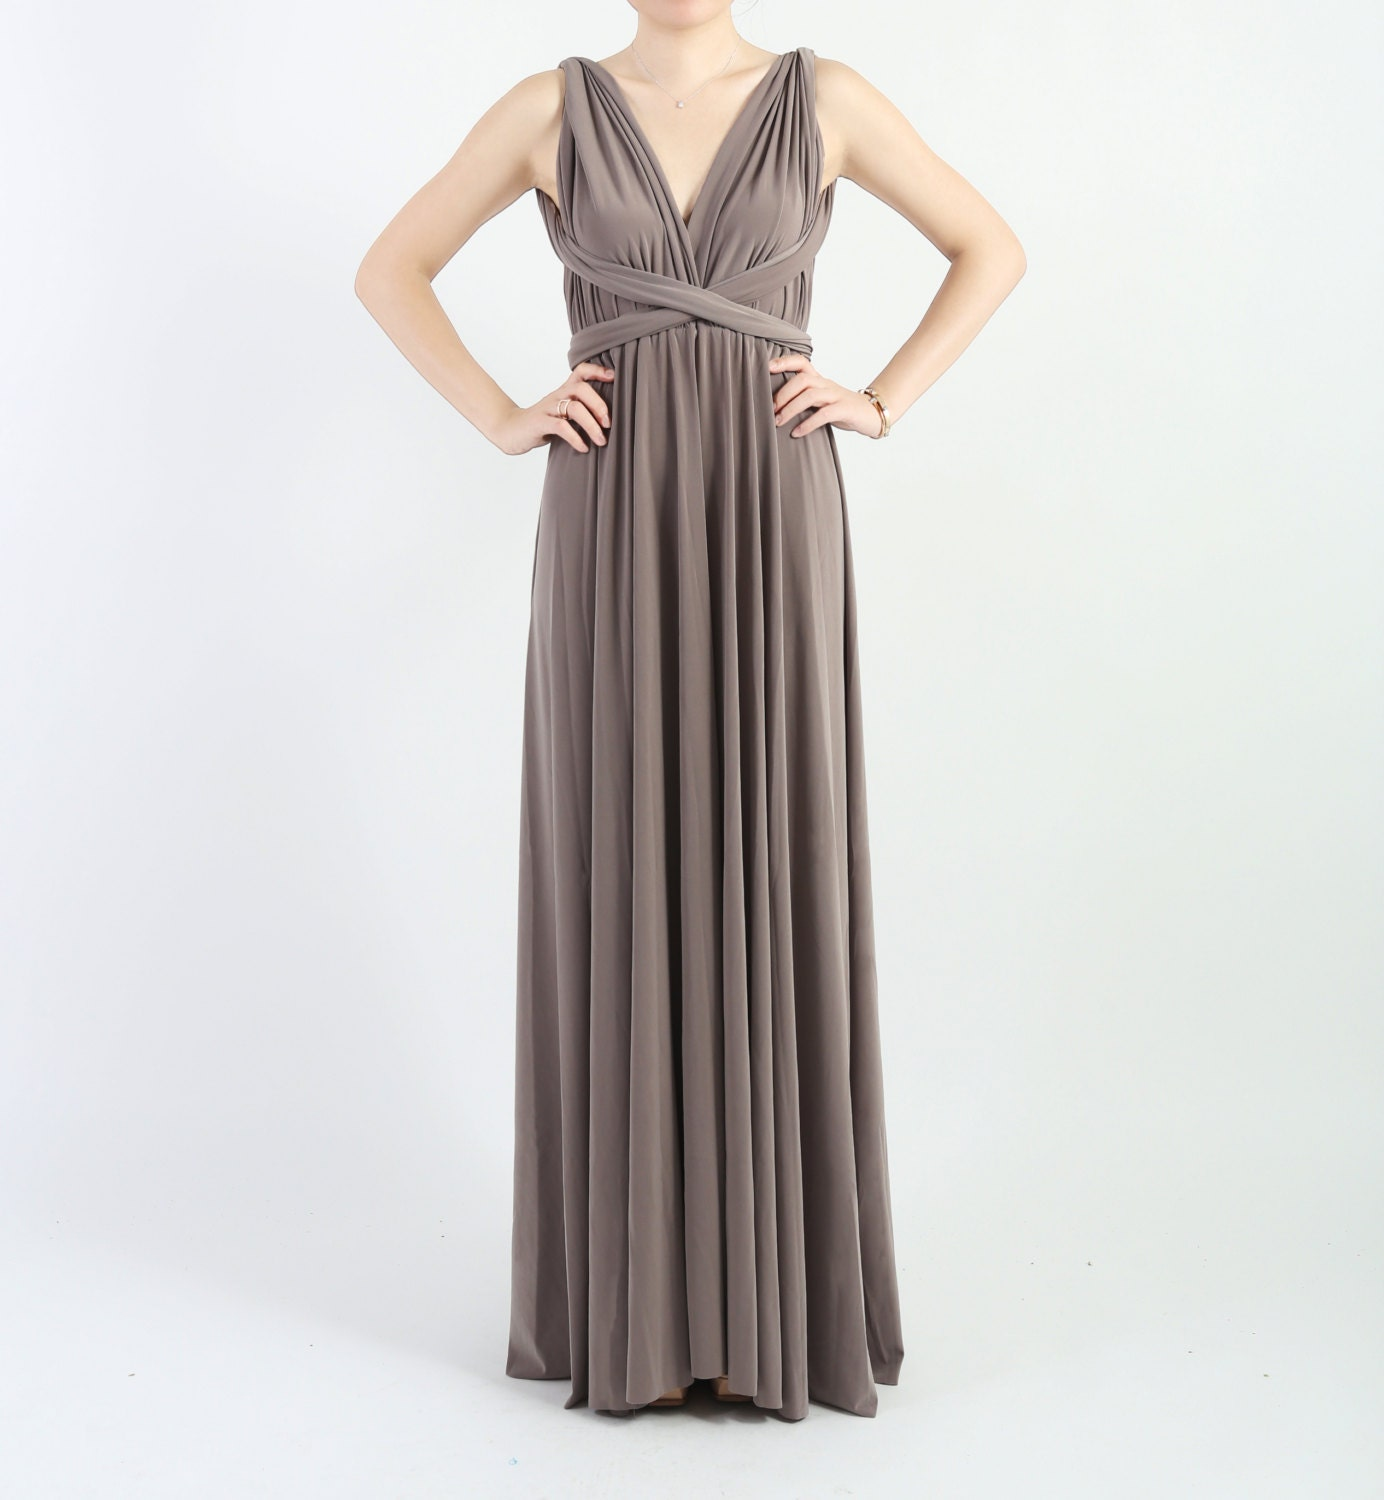 Taupe Long Floor Length Ball Gown Infinity Dress Convertible